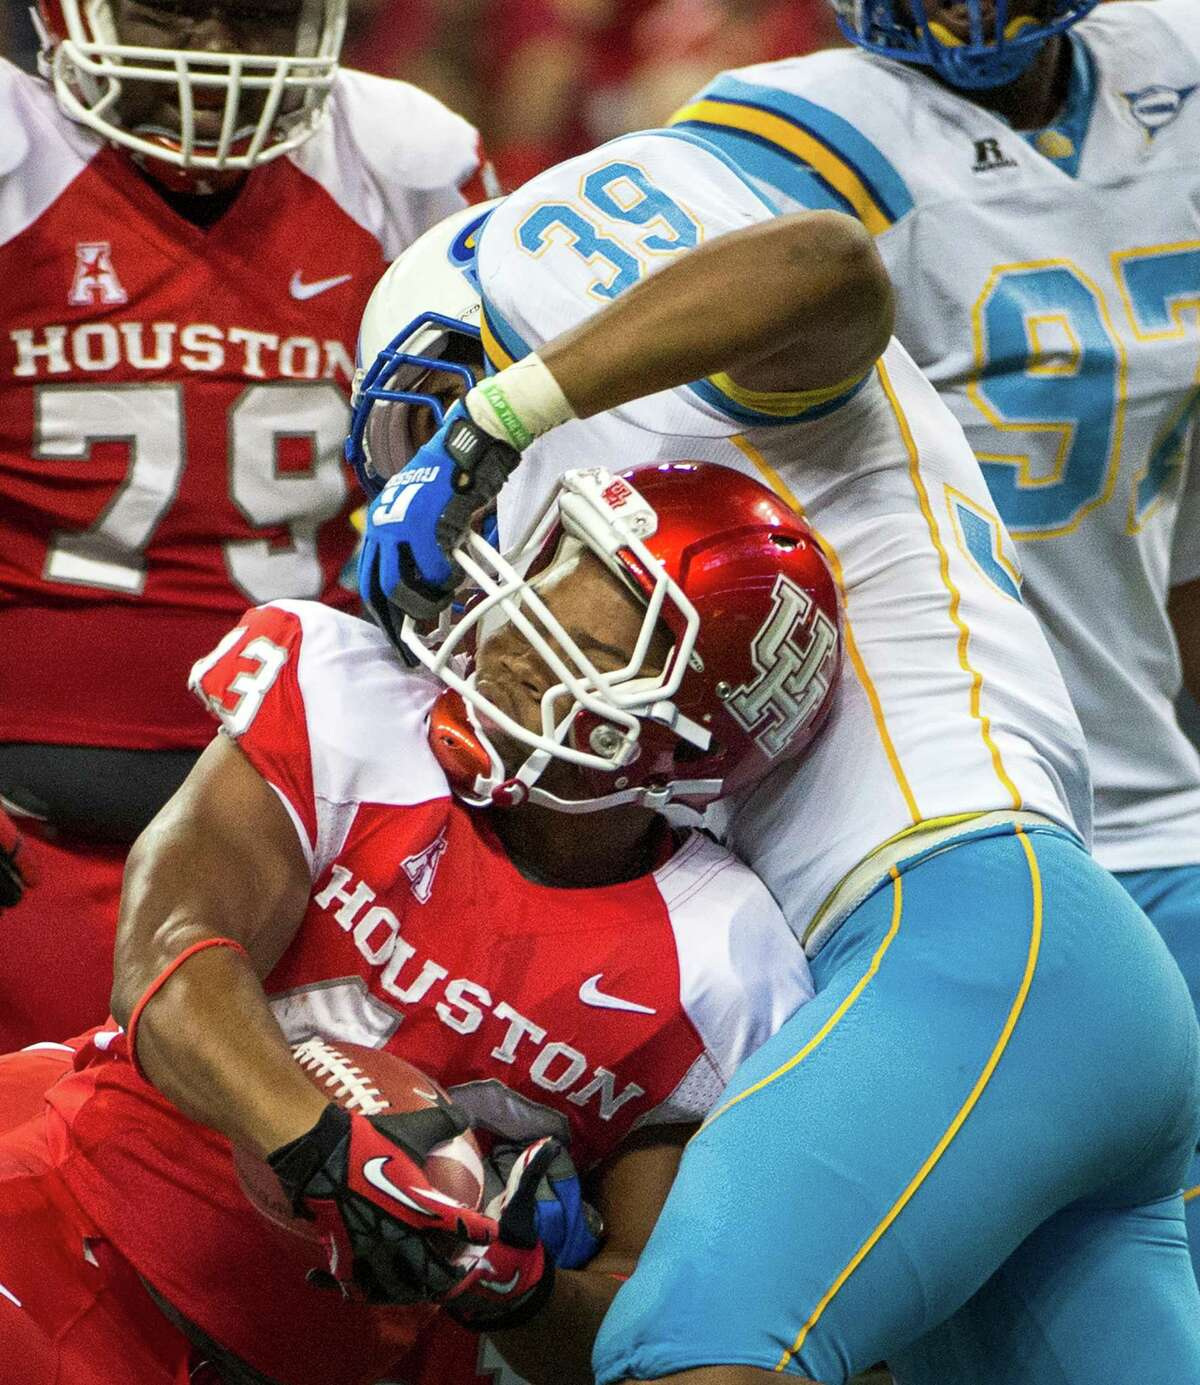 Houston running back Justin Hicks (43) pushes past Southern University linebacker Demetrius Carter (39) to score on a 1-yard touchdown run during the second half of a college football game at Reliant Stadium, Friday, Aug. 30, 2013, in Houston. Houston won the game 62-13.